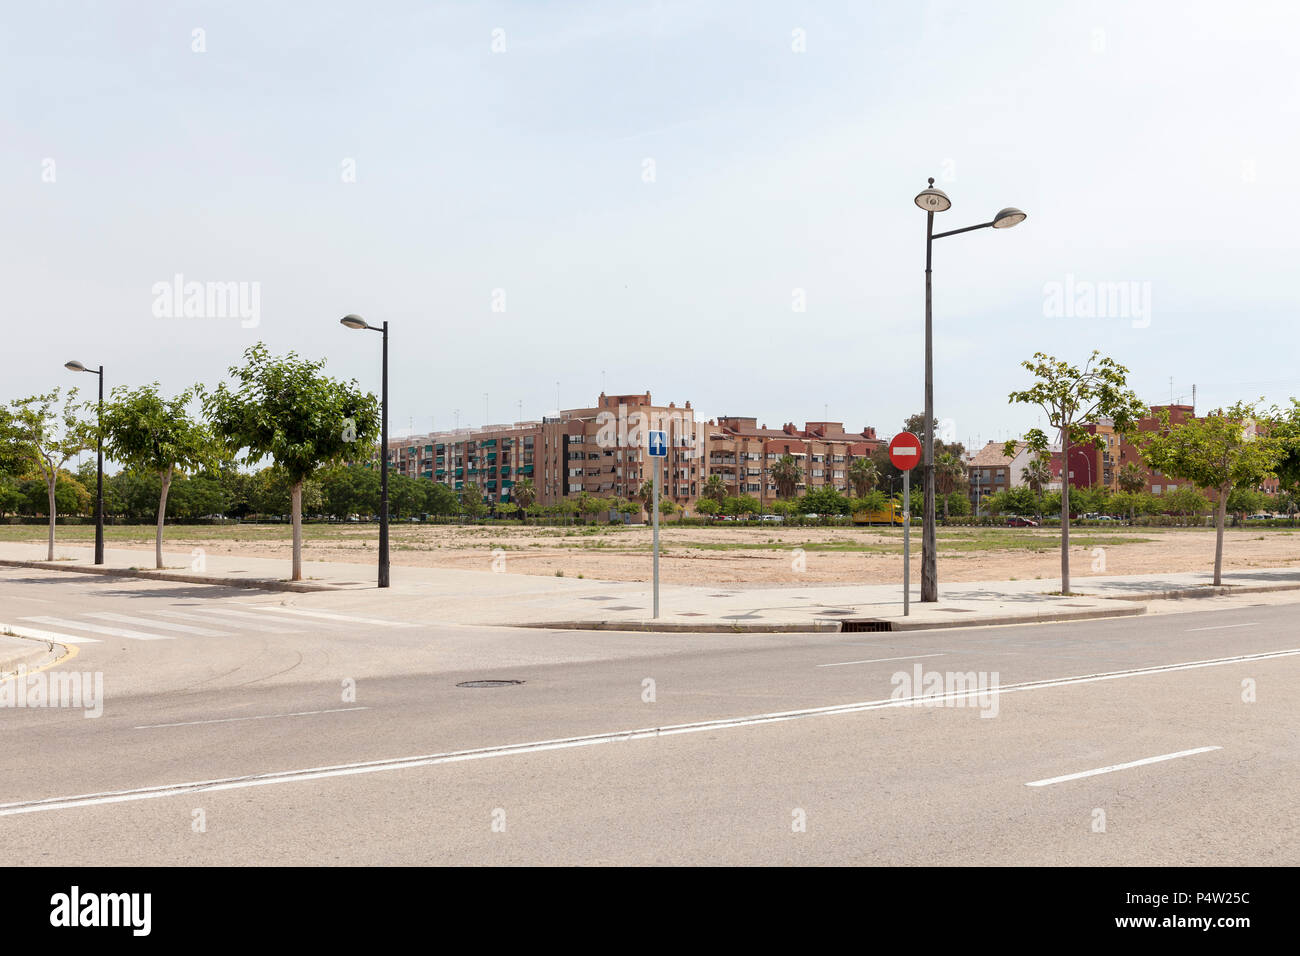 Valencia, Spain, housing estate and undeveloped land - Stock Image